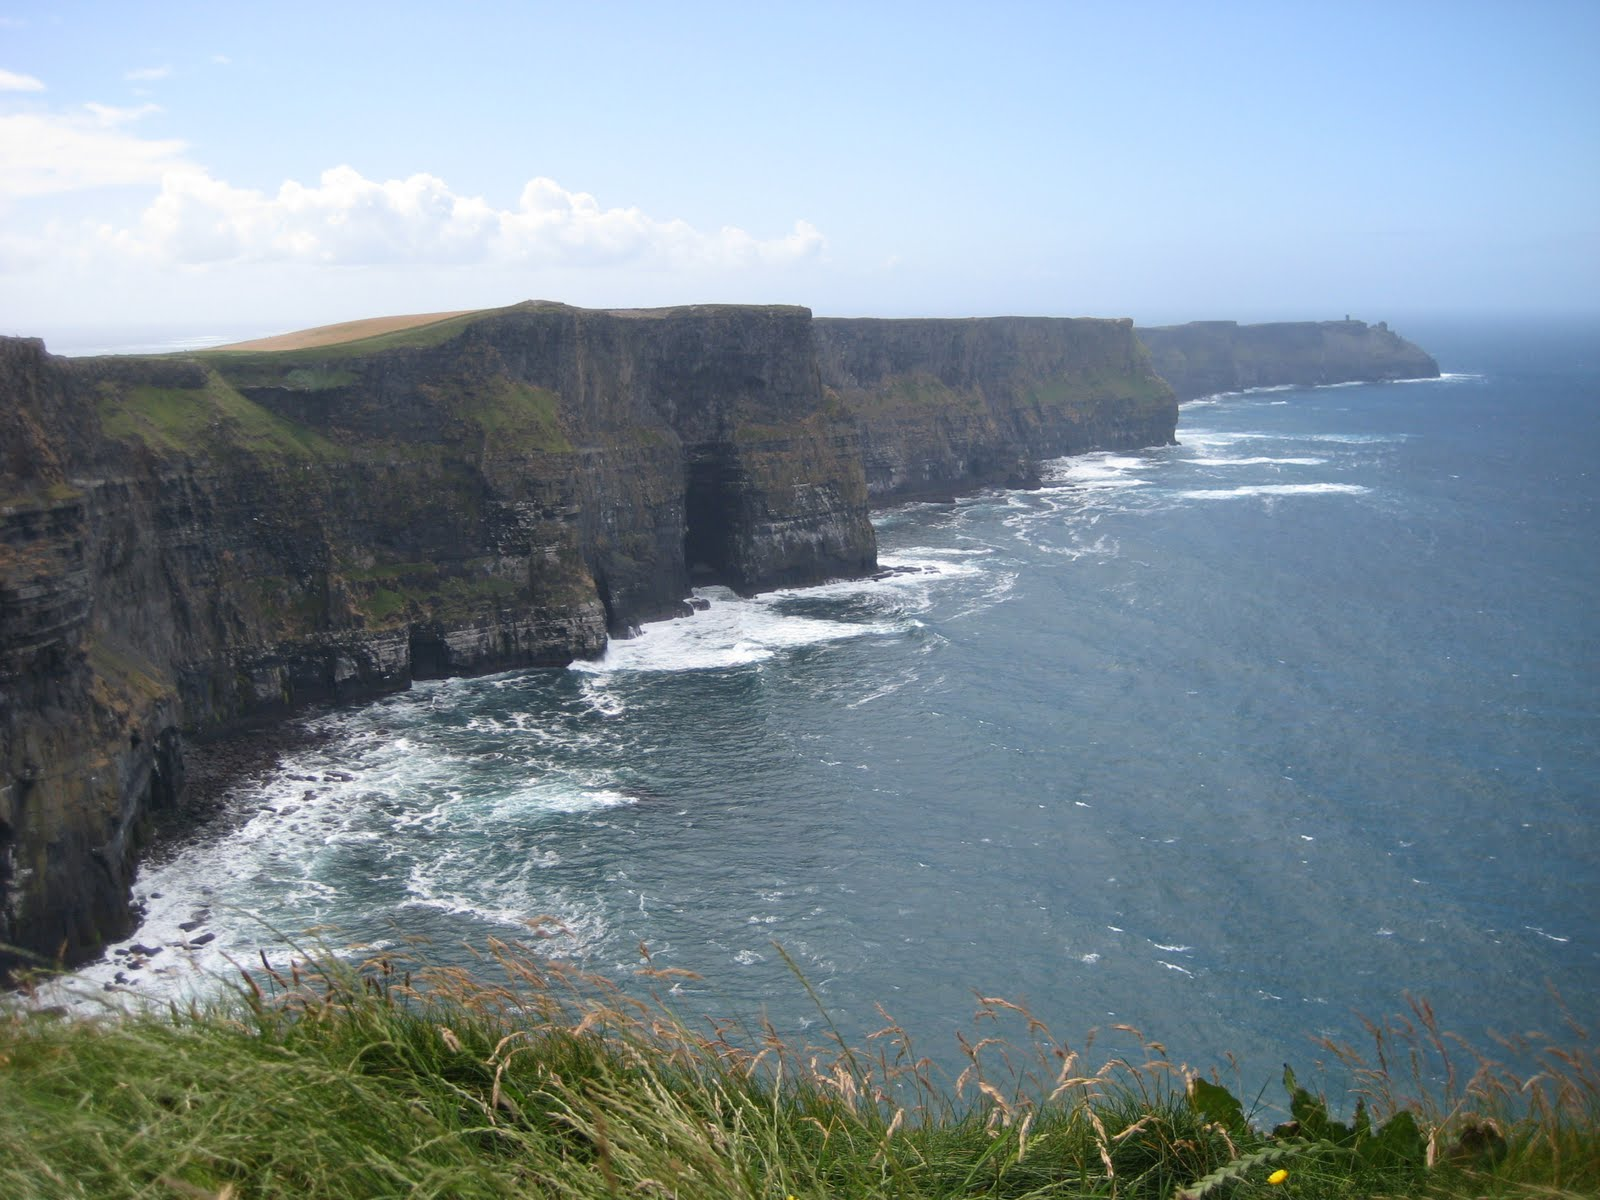 HOLIDAYS in IRELAND: KMLE Country 108 at the Cliffs of Moher